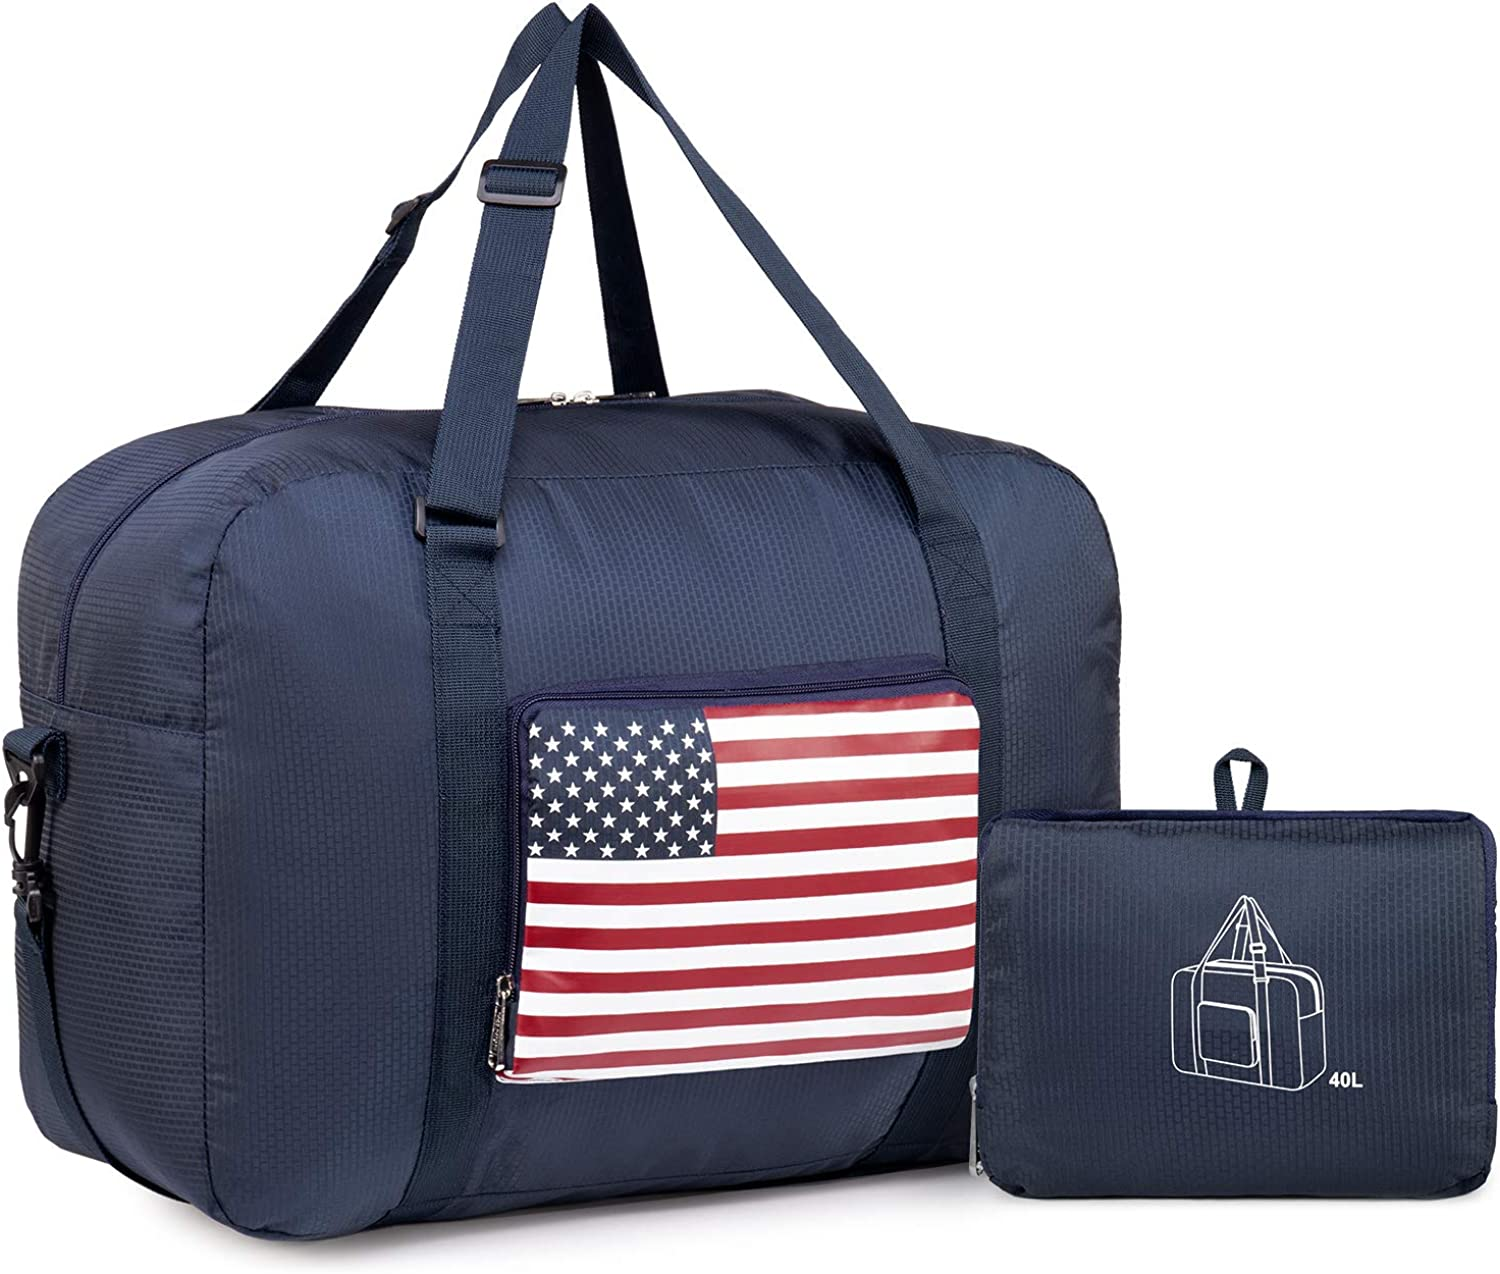 Unisex Travel Carry-on Tote Duffel Unisex Men and Women Canvas Plus Leather Portable Weekend Overnight Travel Bag Sports Duffel Tote Luggage Holdall Handbag Shoulder Bags Weekender Overnight Tote Lugg